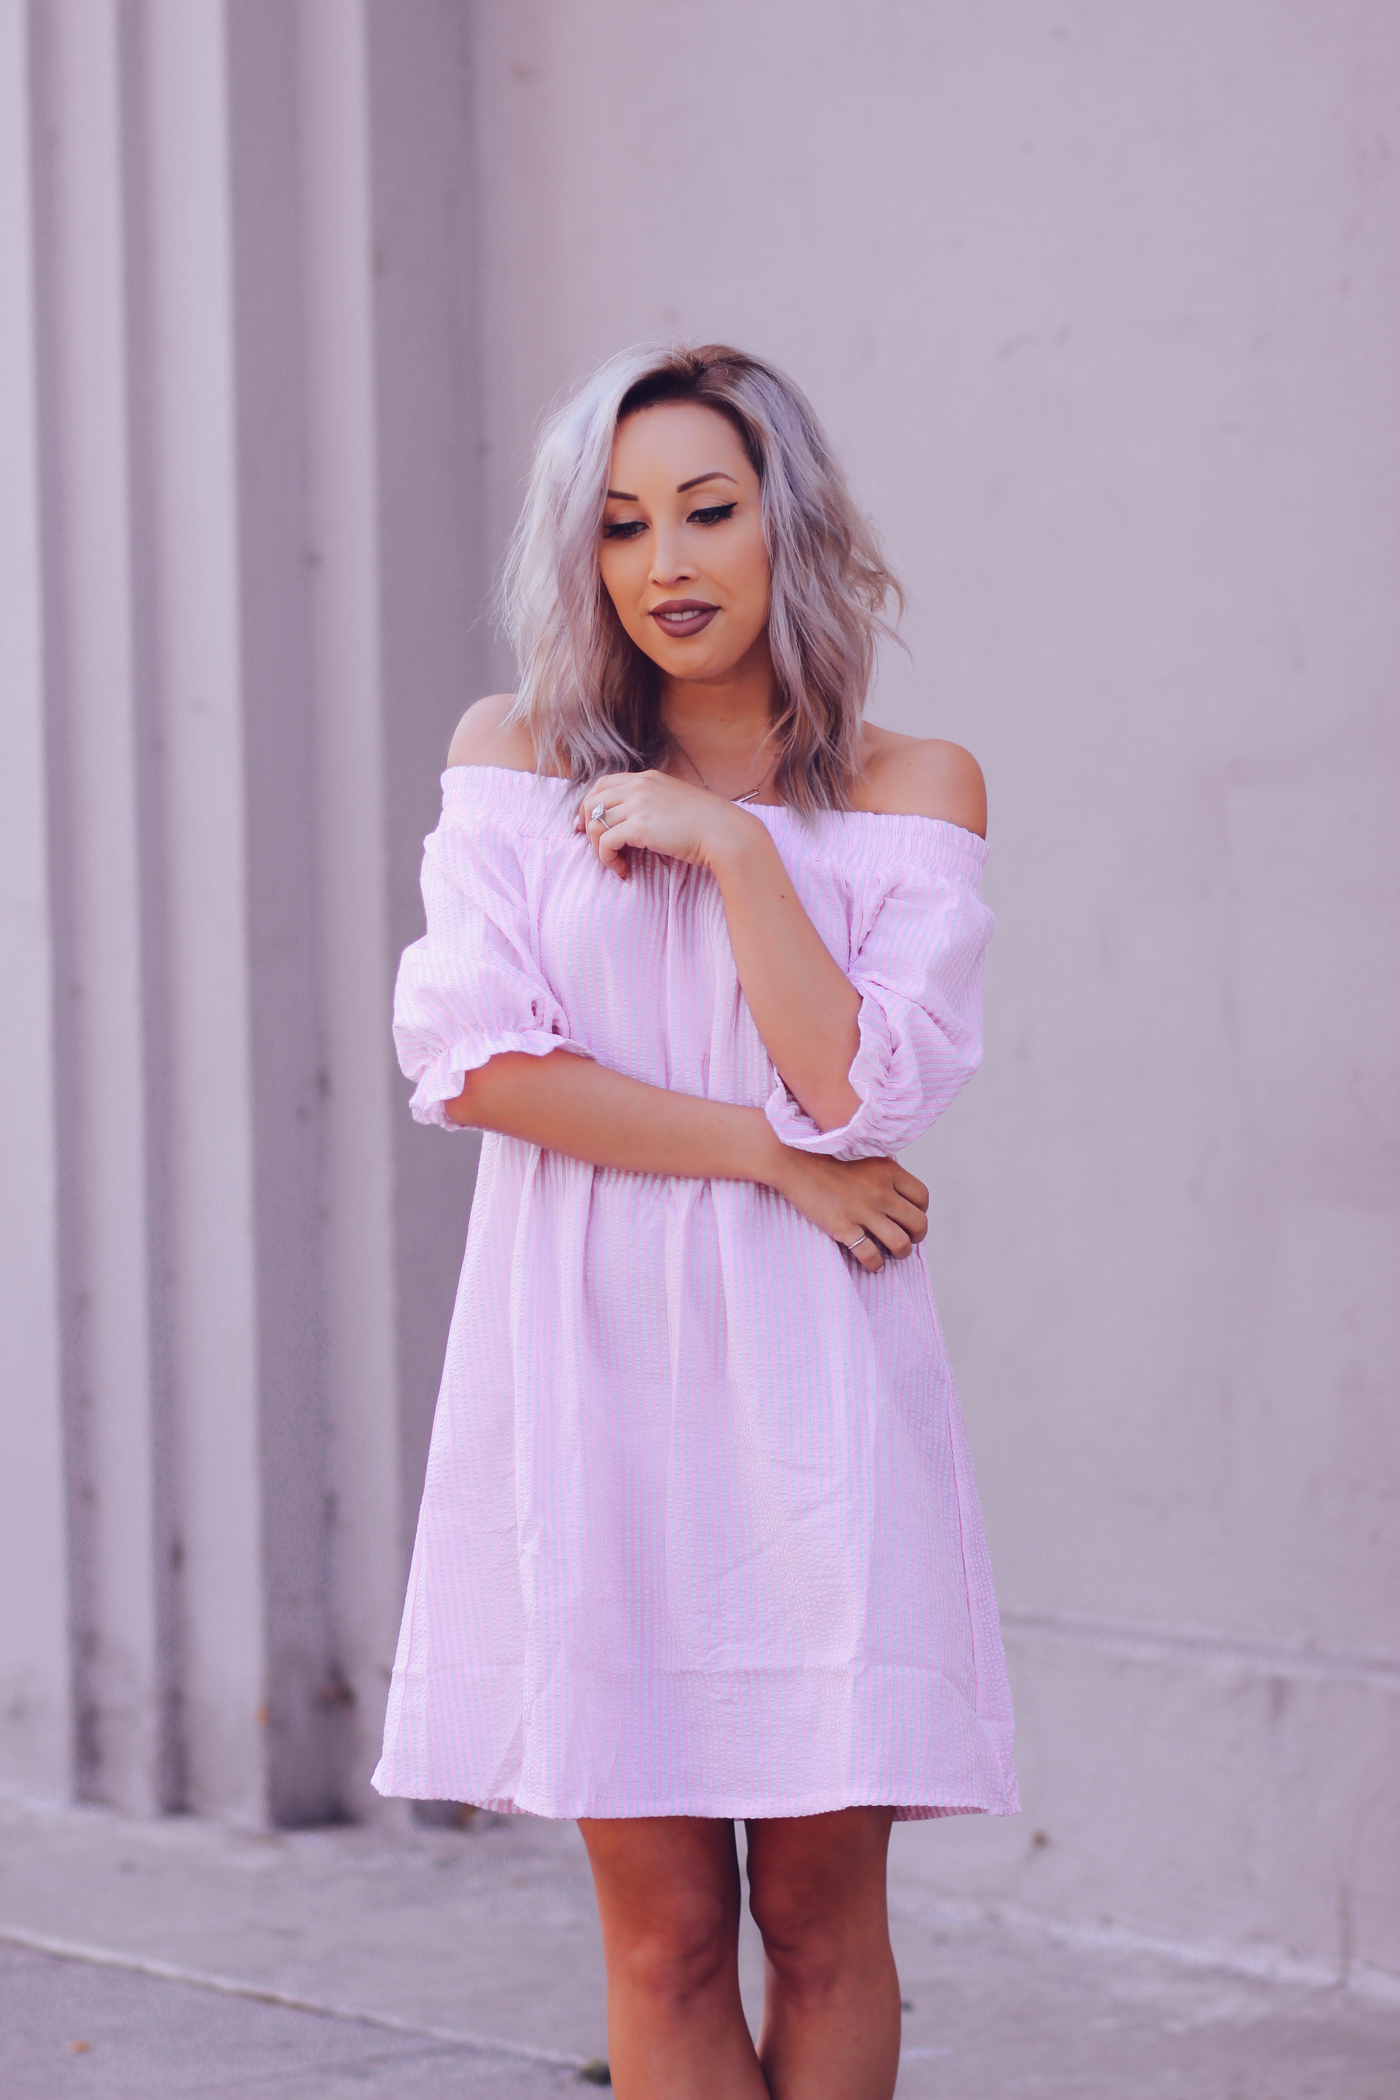 Blondie in the City | Pink Stripe Off The Shoulder Dress | Pink Christian Louboutin's